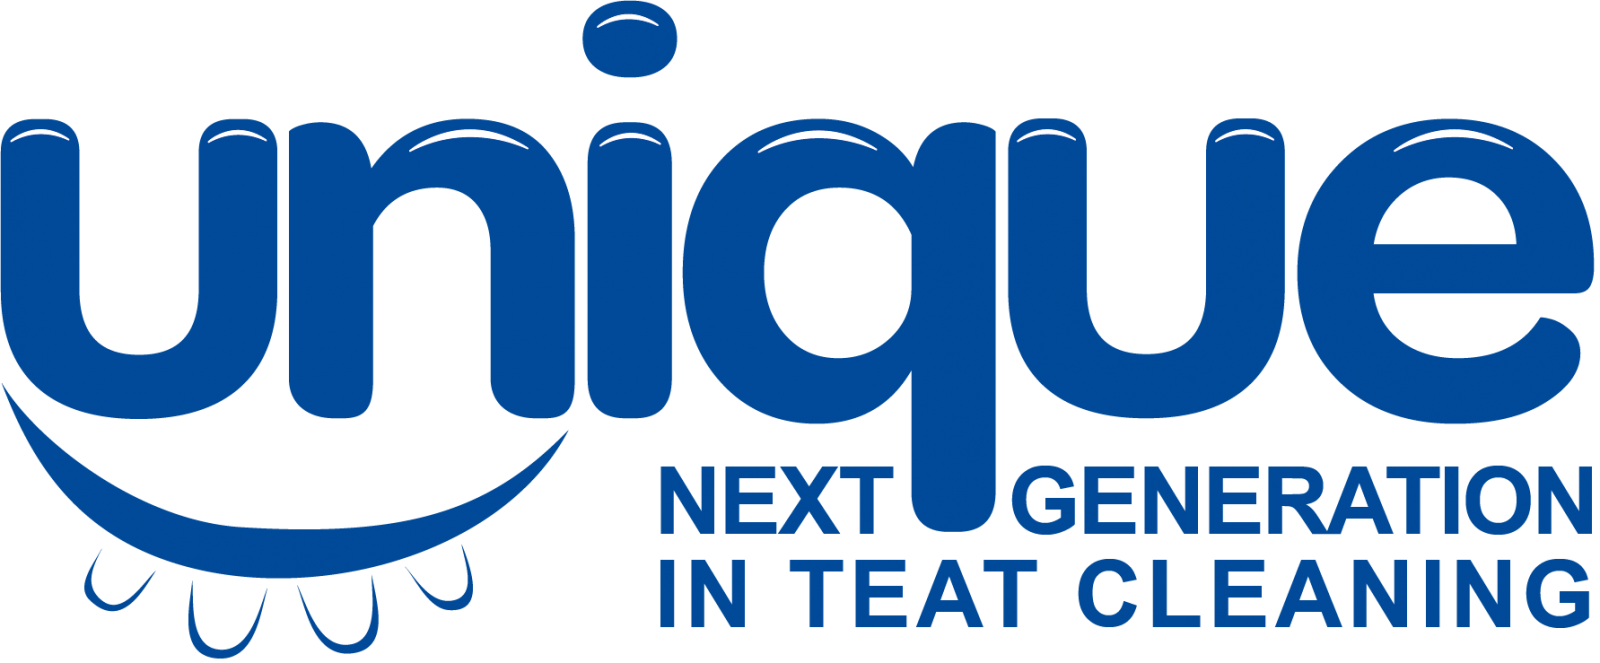 Unique Teat Cleaner – The Next Generation in Teat Cleaning